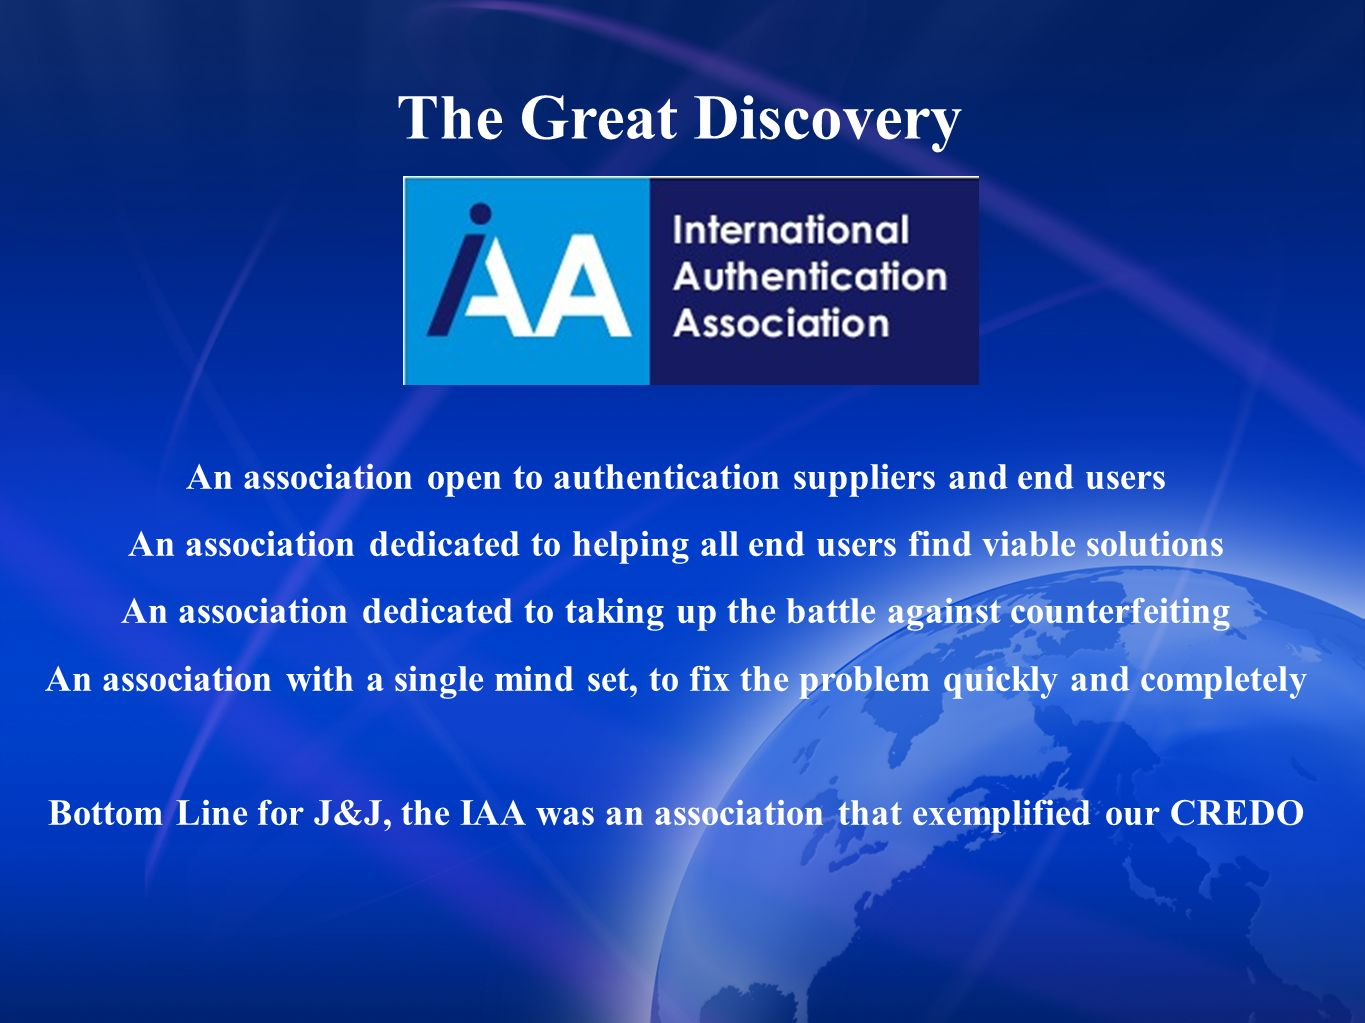 An association open to authentication suppliers and end users An association dedicated to helping all end users find viable solutions An association dedicated to taking up the battle against counterfeiting An association with a single mind set, to fix the problem quickly and completely Bottom Line for J&J, the IAA was an association that exemplified our CREDO The Great Discovery